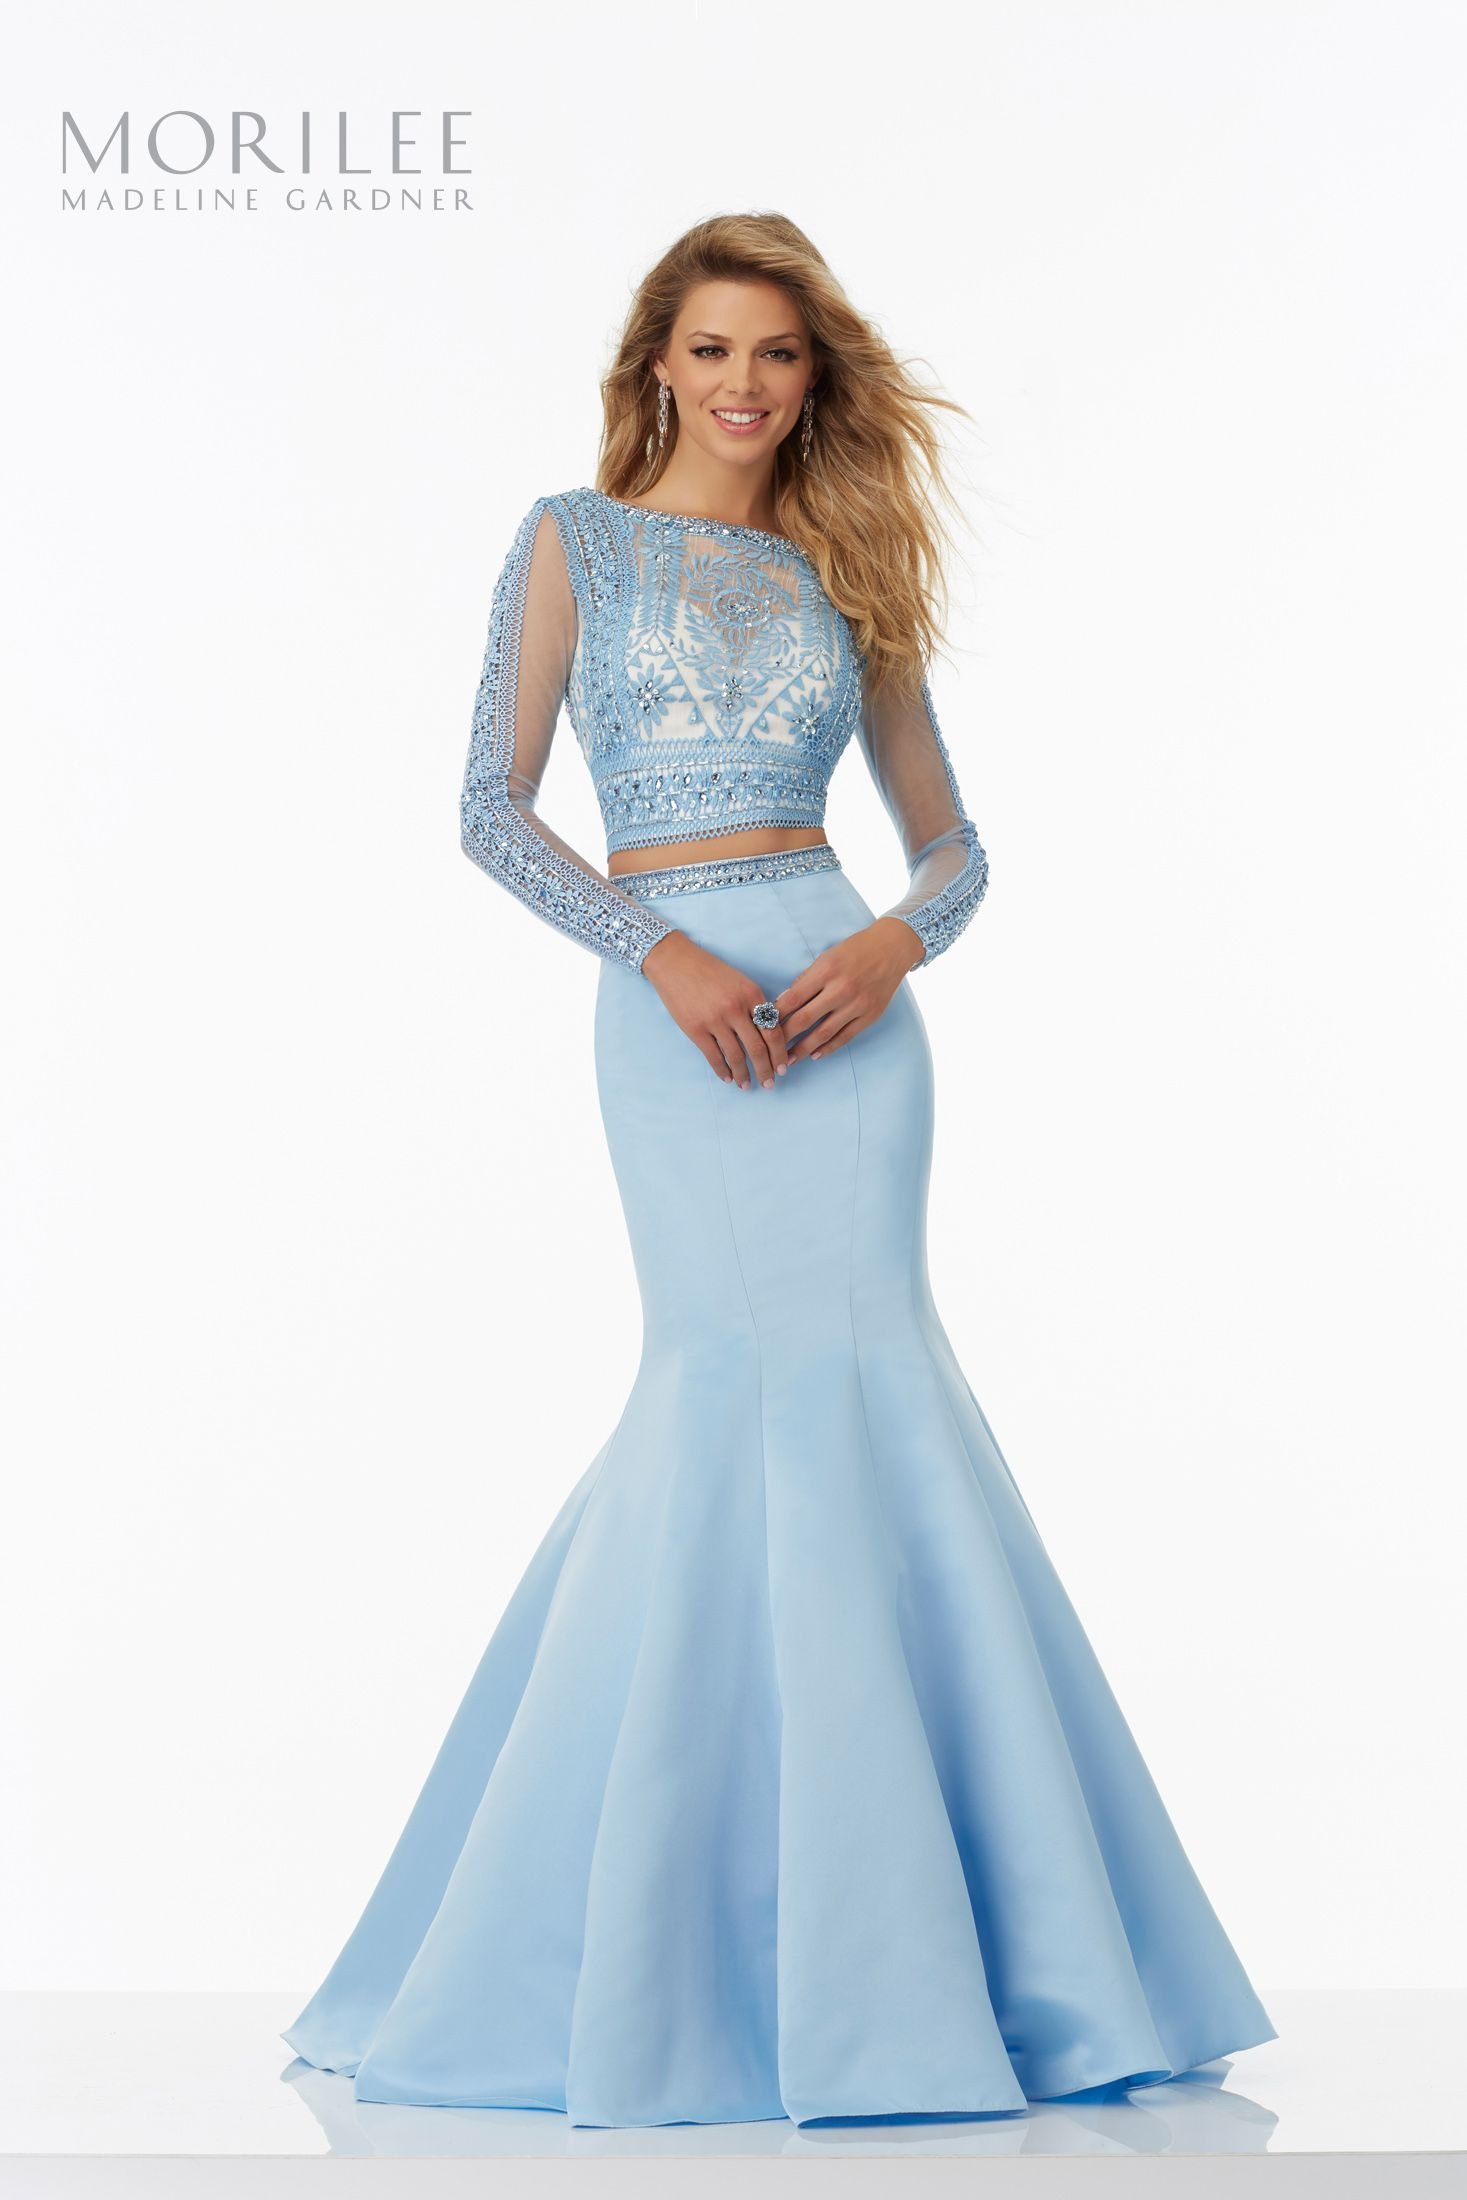 Pin by Jas on Dresses | Pinterest | Prom, Trumpet dress and Trumpets